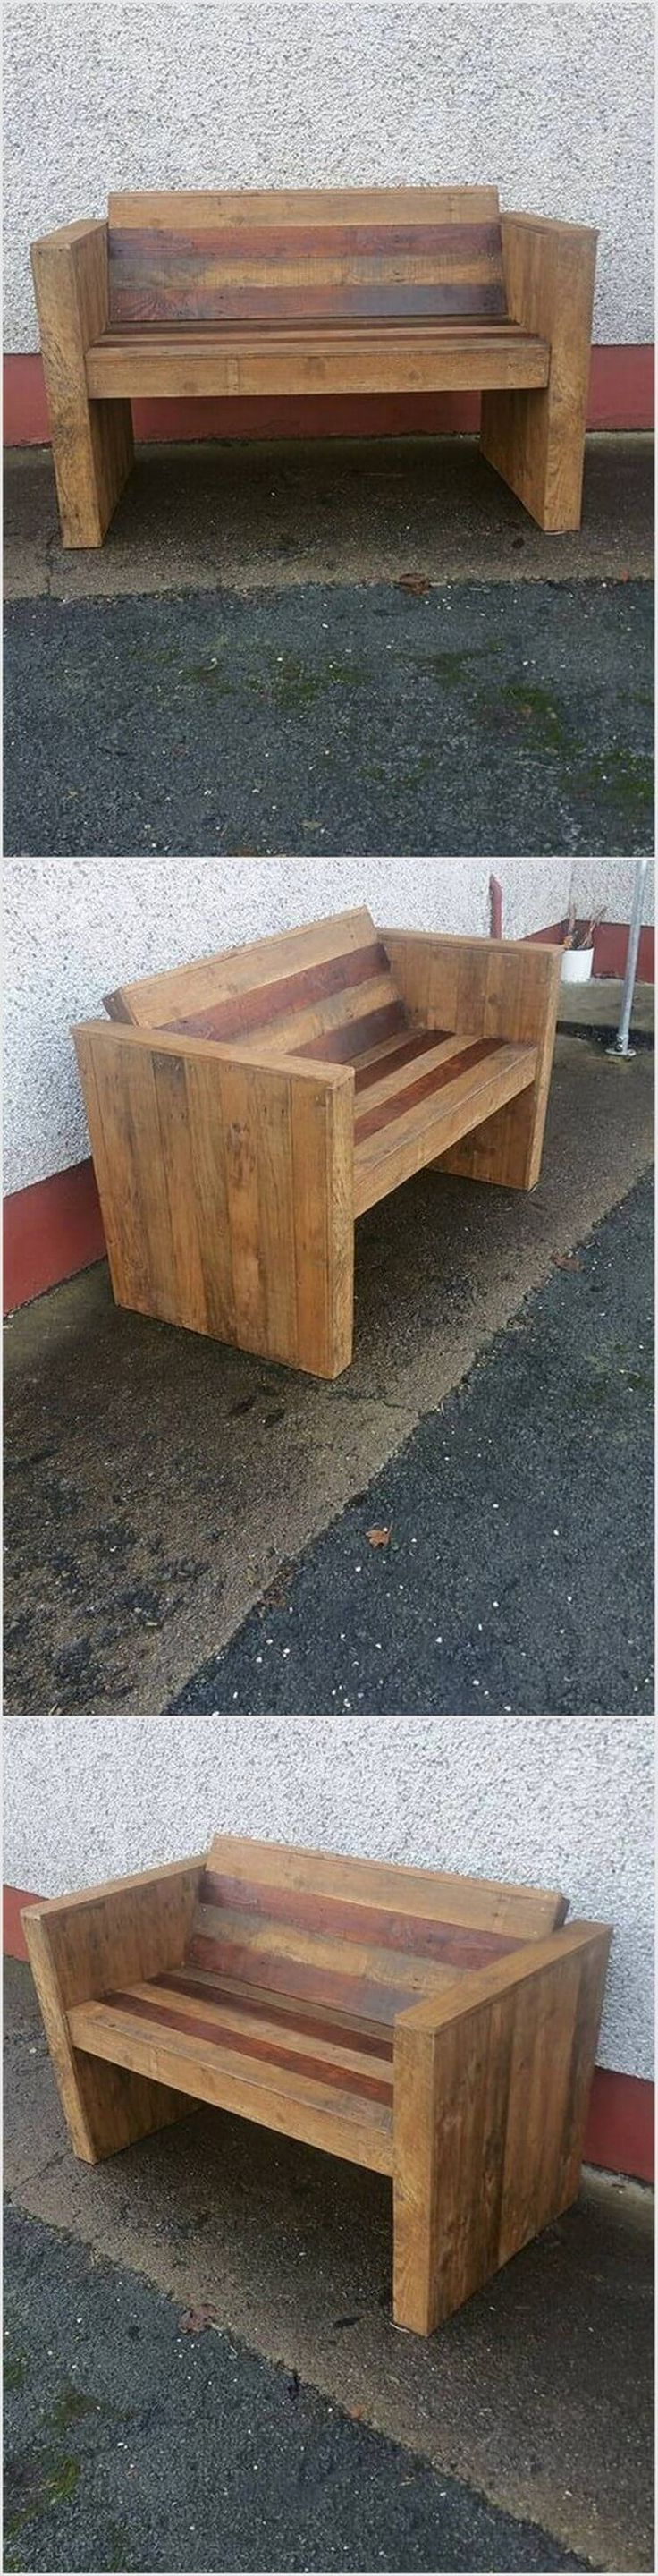 Recycled Pallet Bench 124 best Pallet Furniture